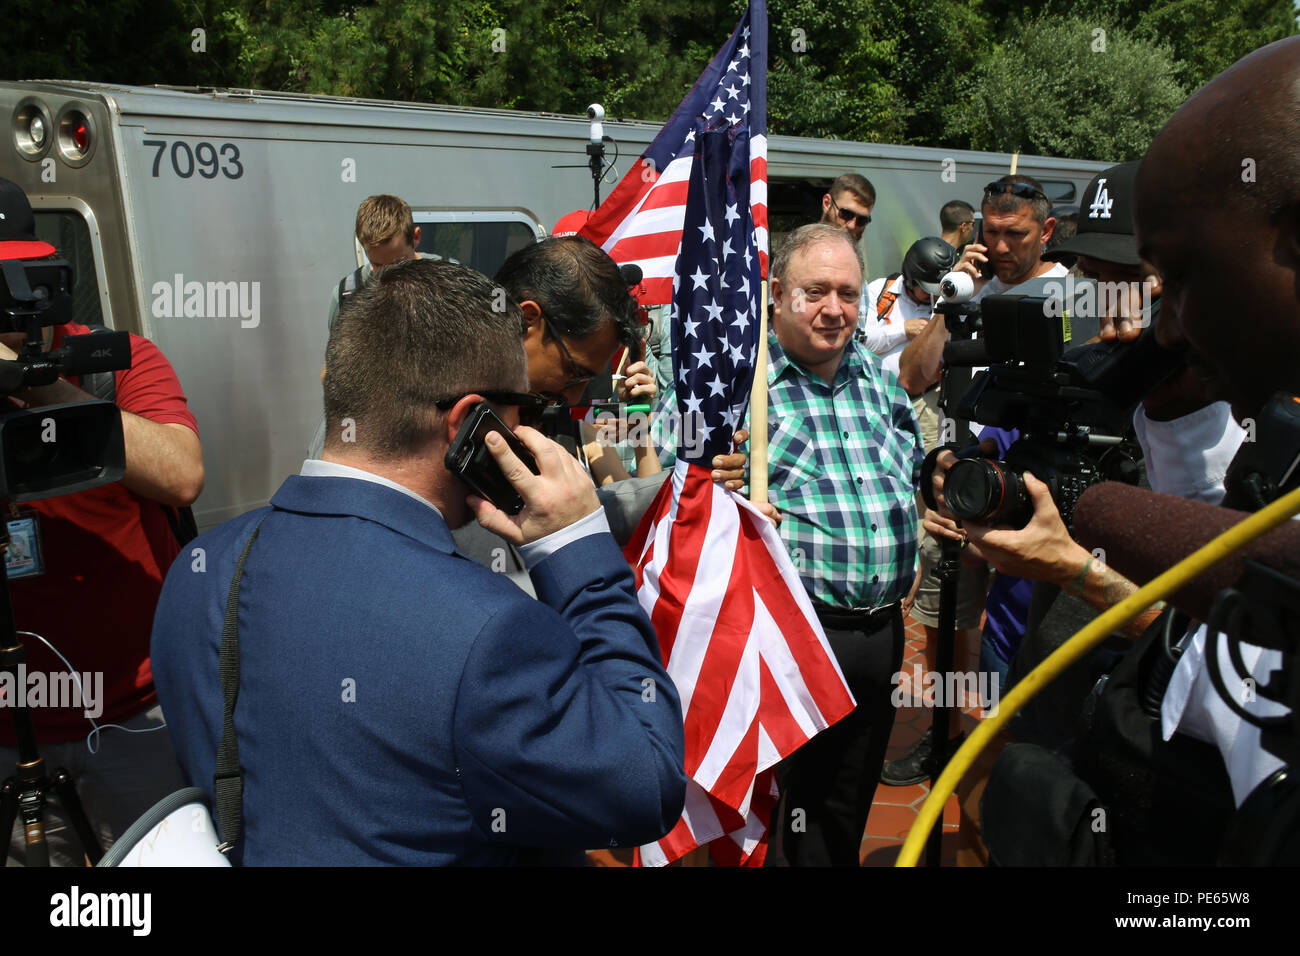 Washington, DC, USA. 12 Aug 2018. Jason Kessler, leader of the white nationalist Unite the Right protest, coordinating with Park Police after being told poles would need to be removed from flags Credit: Joseph Gruber/Alamy Live News - Stock Image